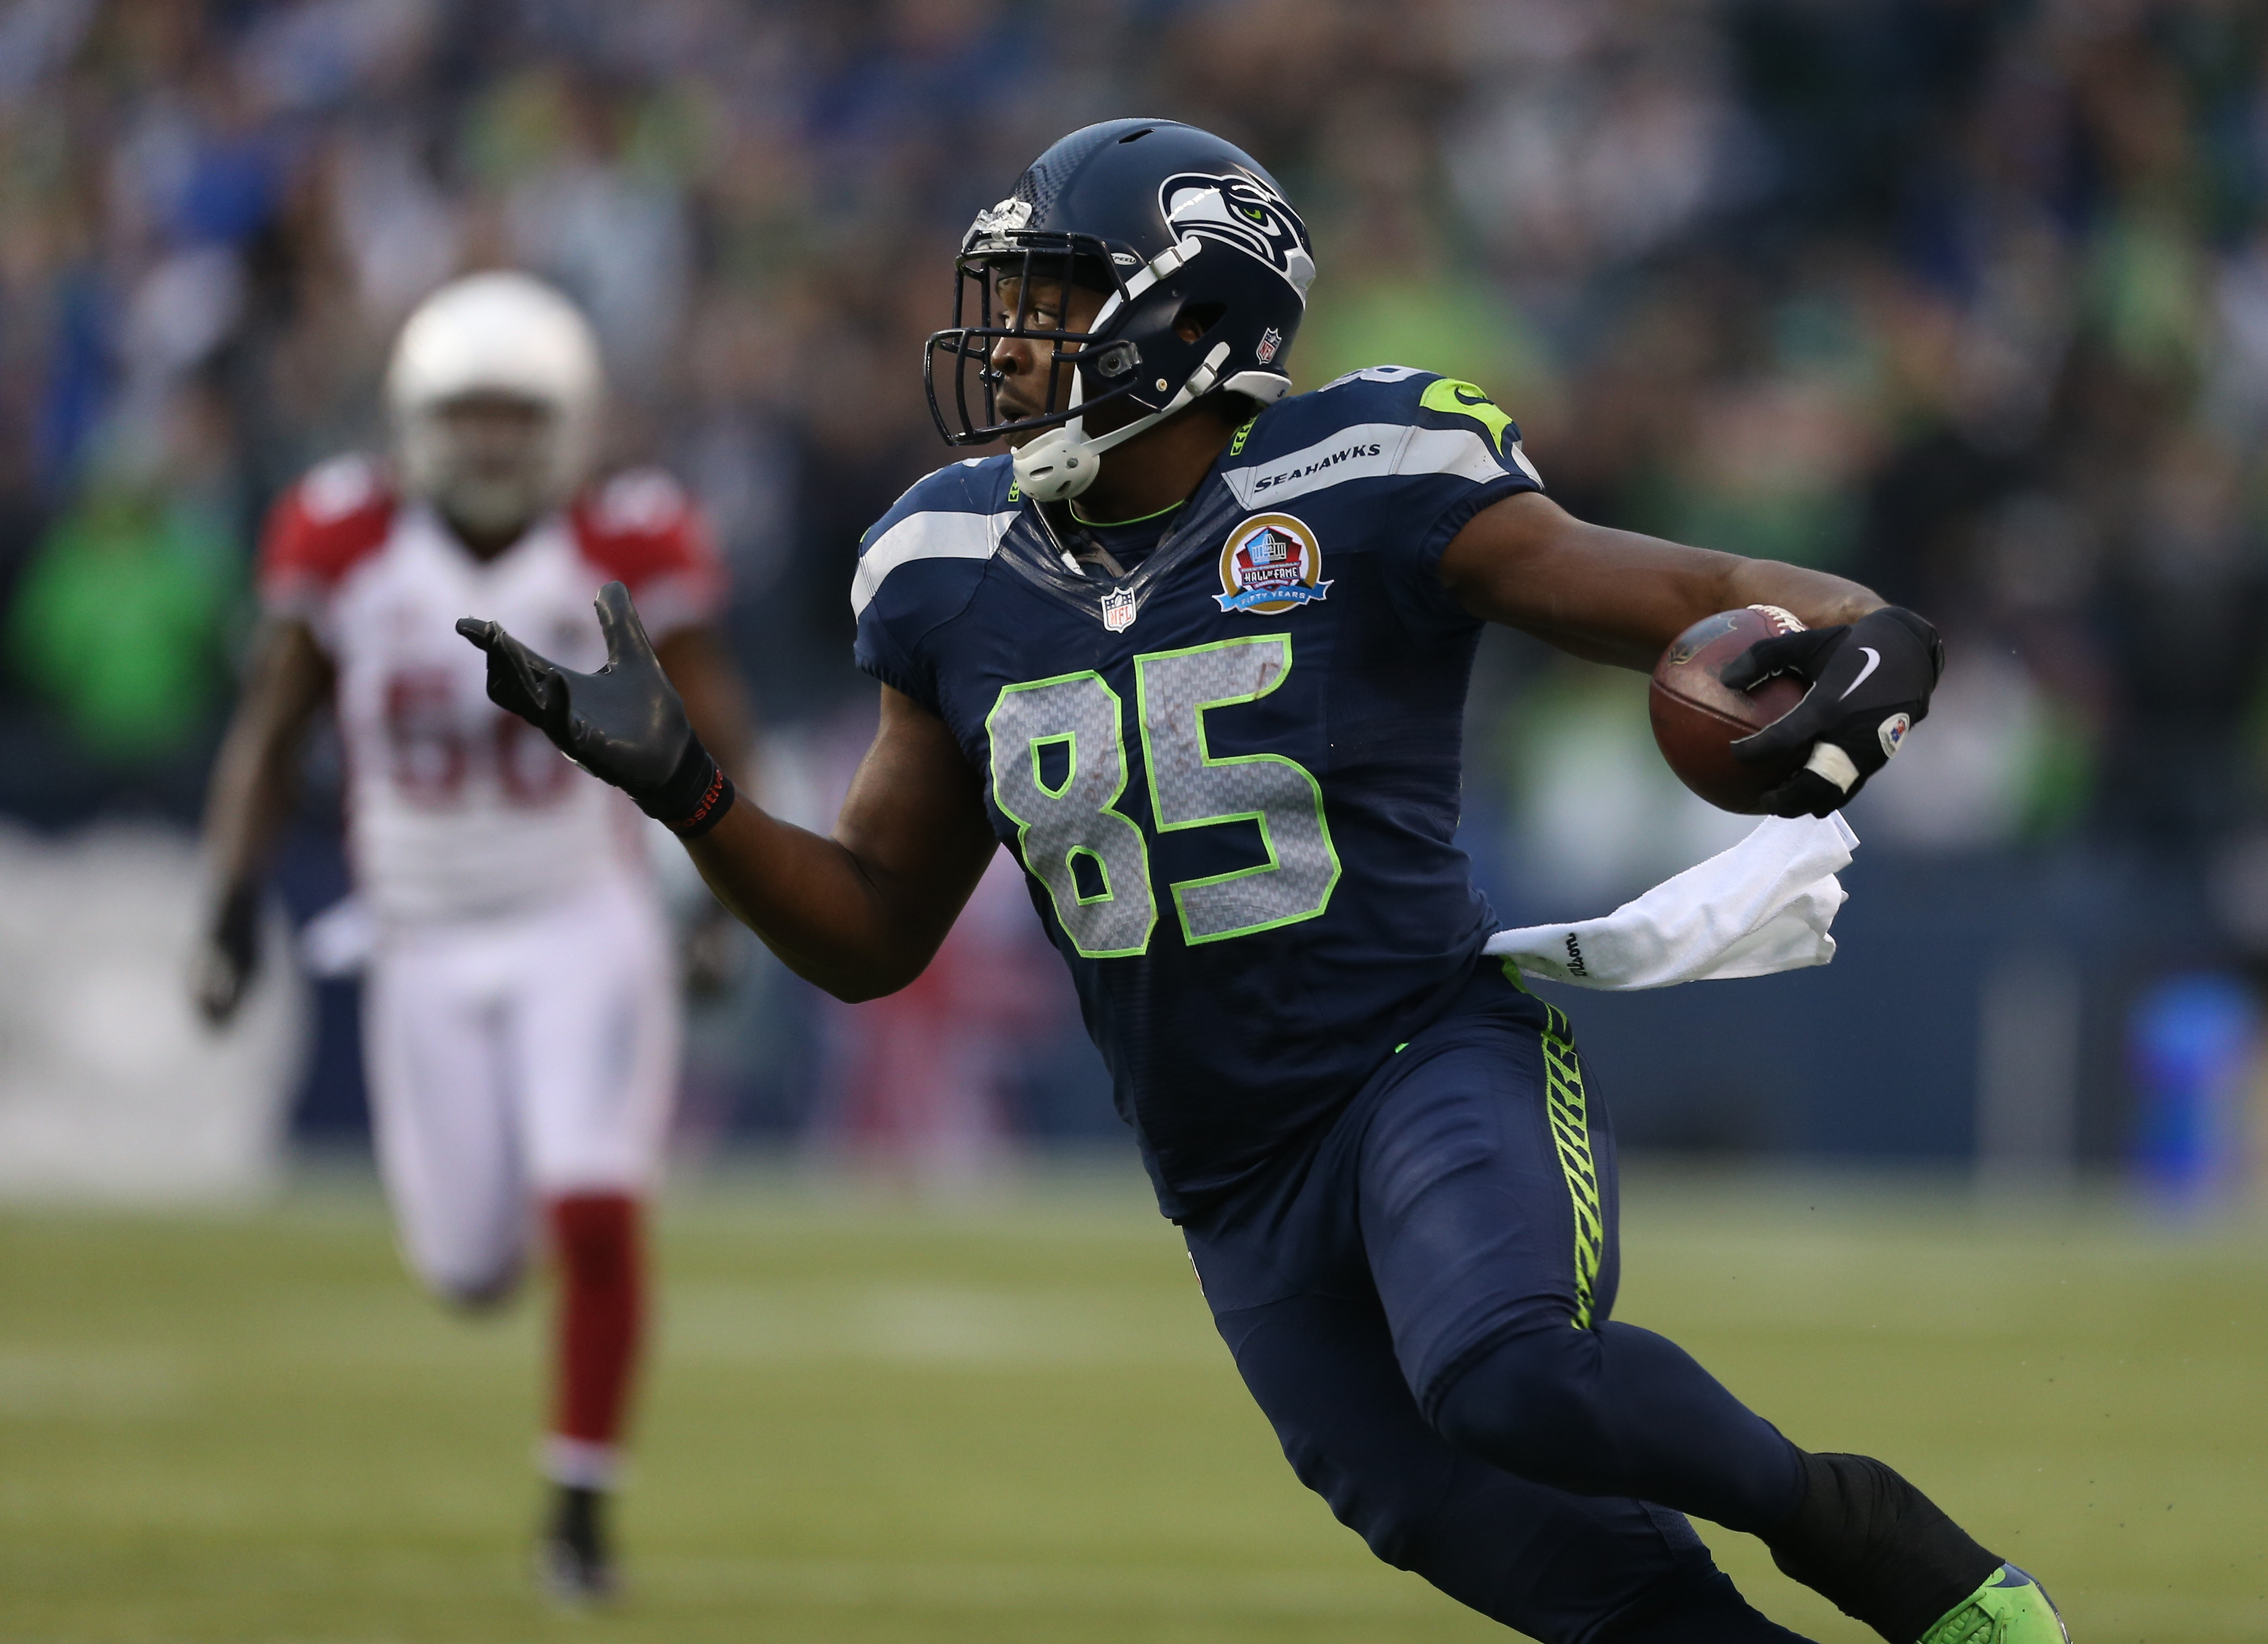 Anthony McCoy injury: Seahawks TE tears Achilles, according to report